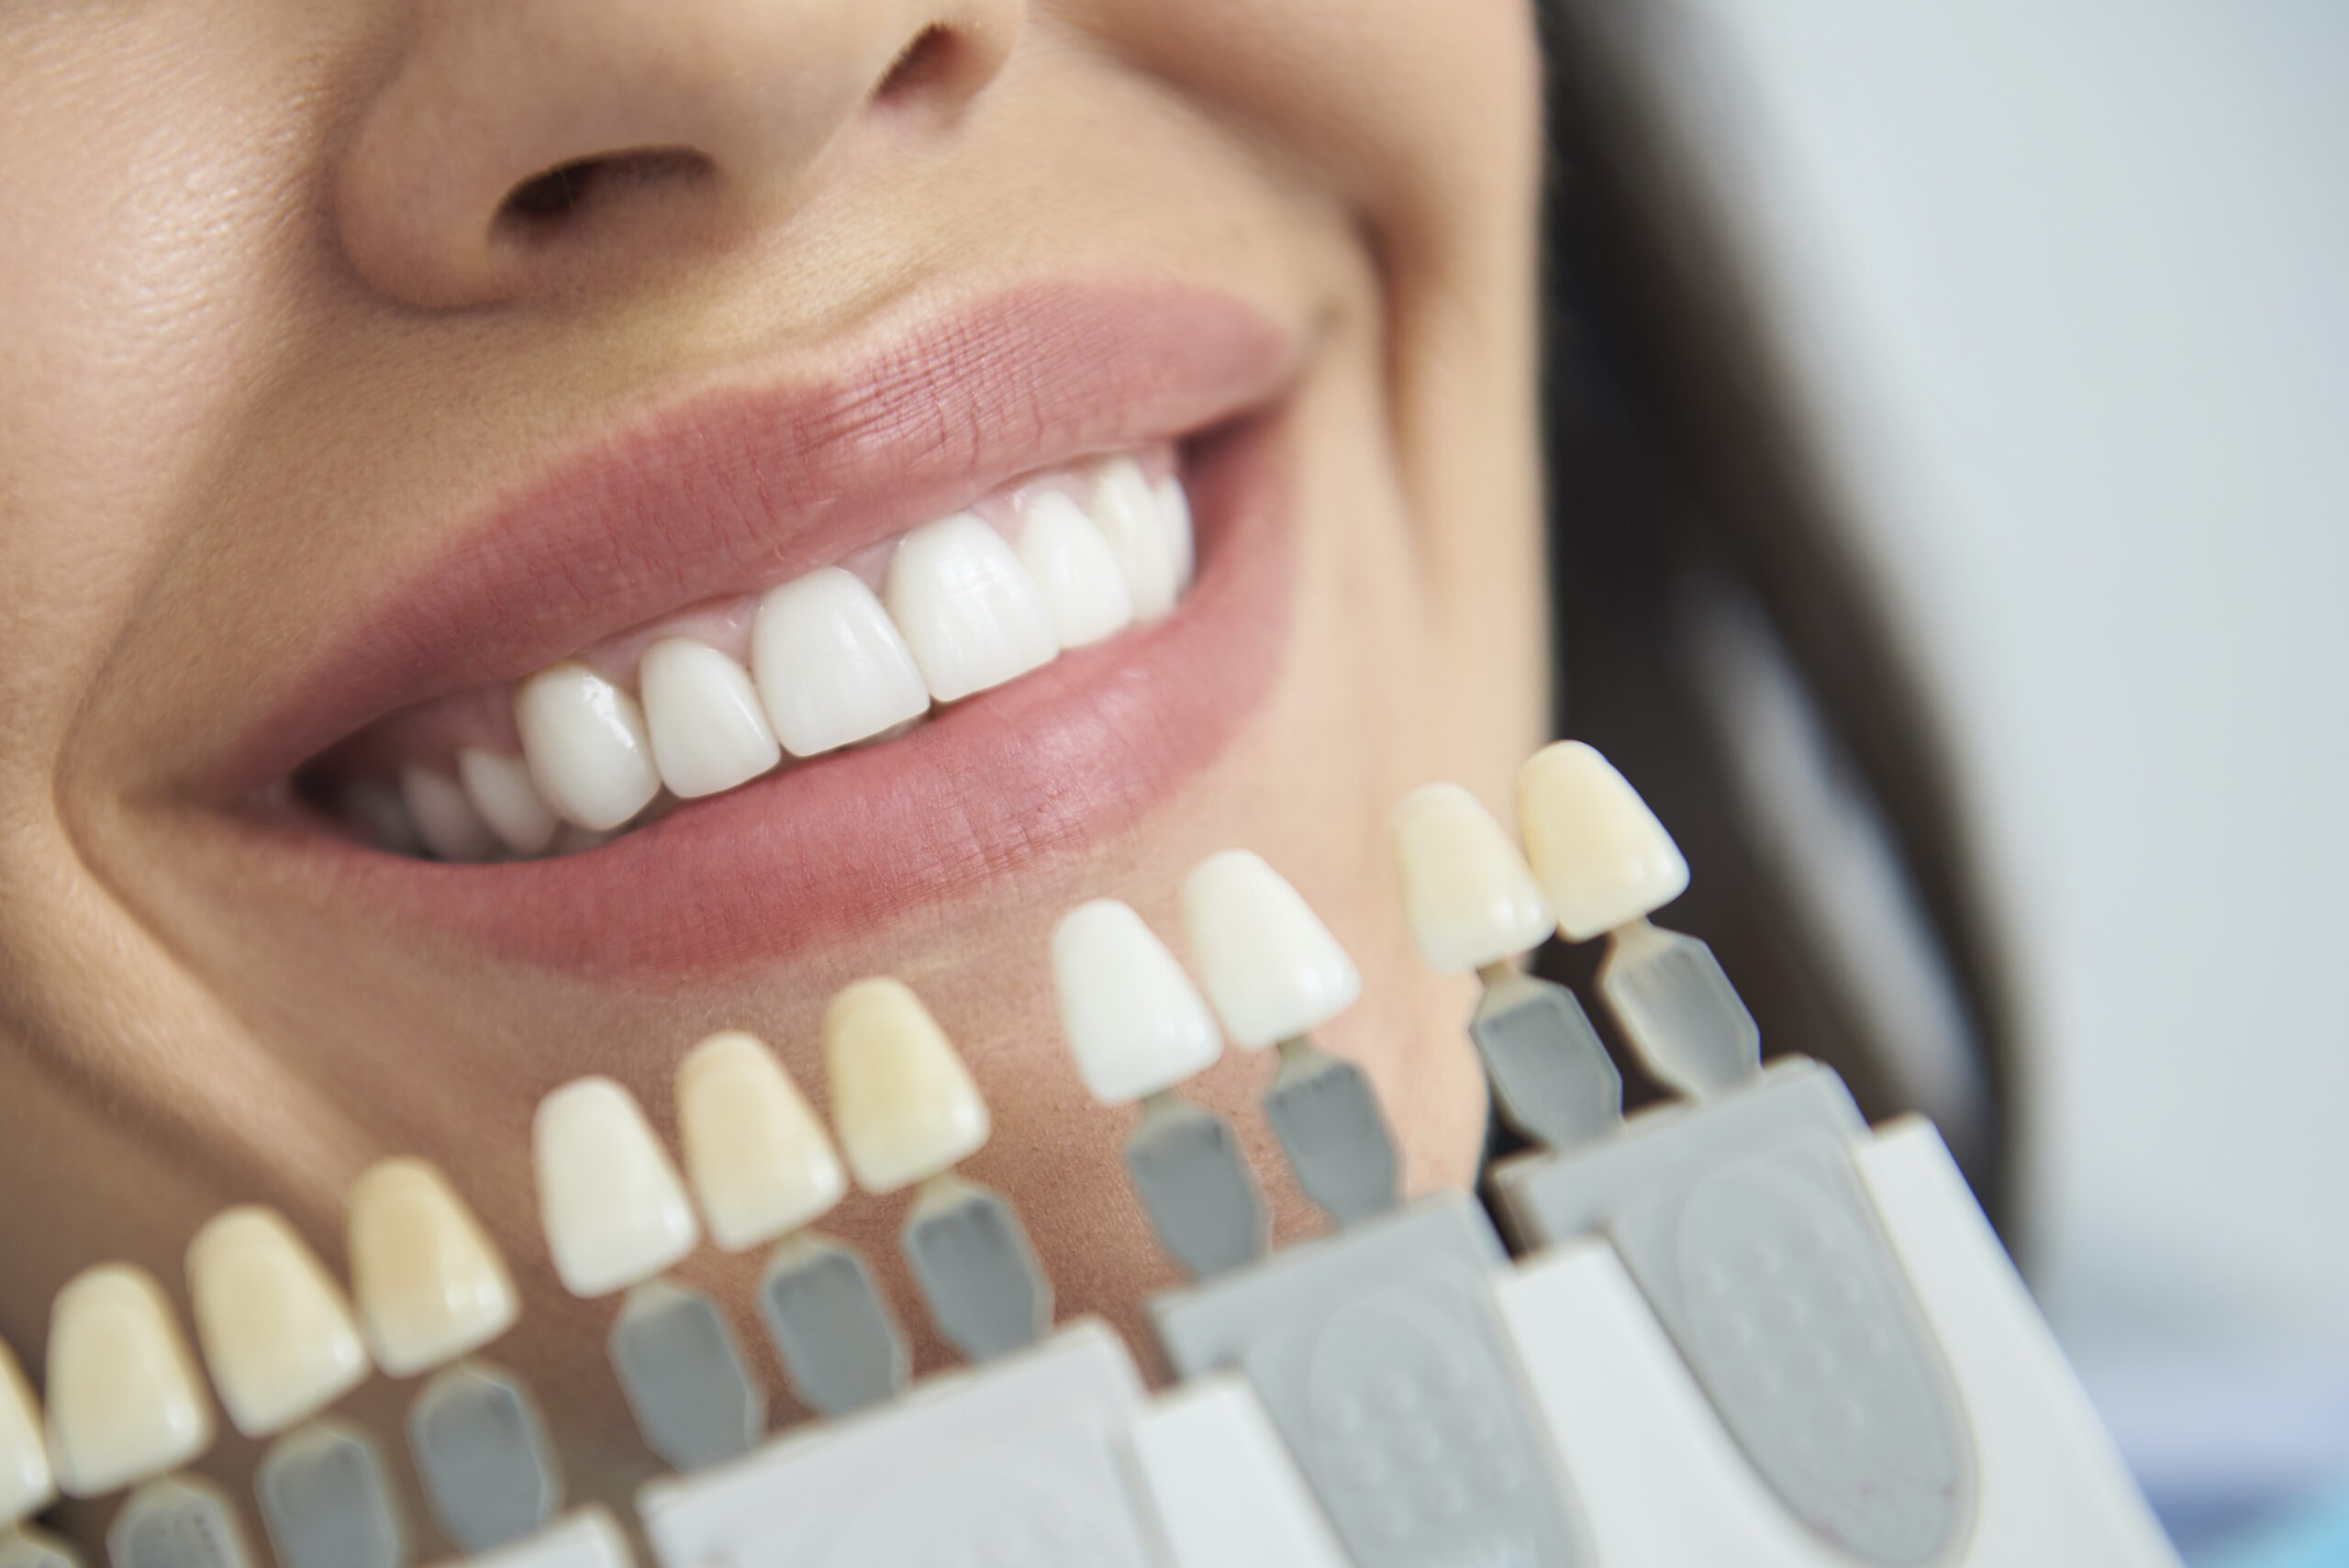 Close up mouth of smiling woman with dental crown situating near it